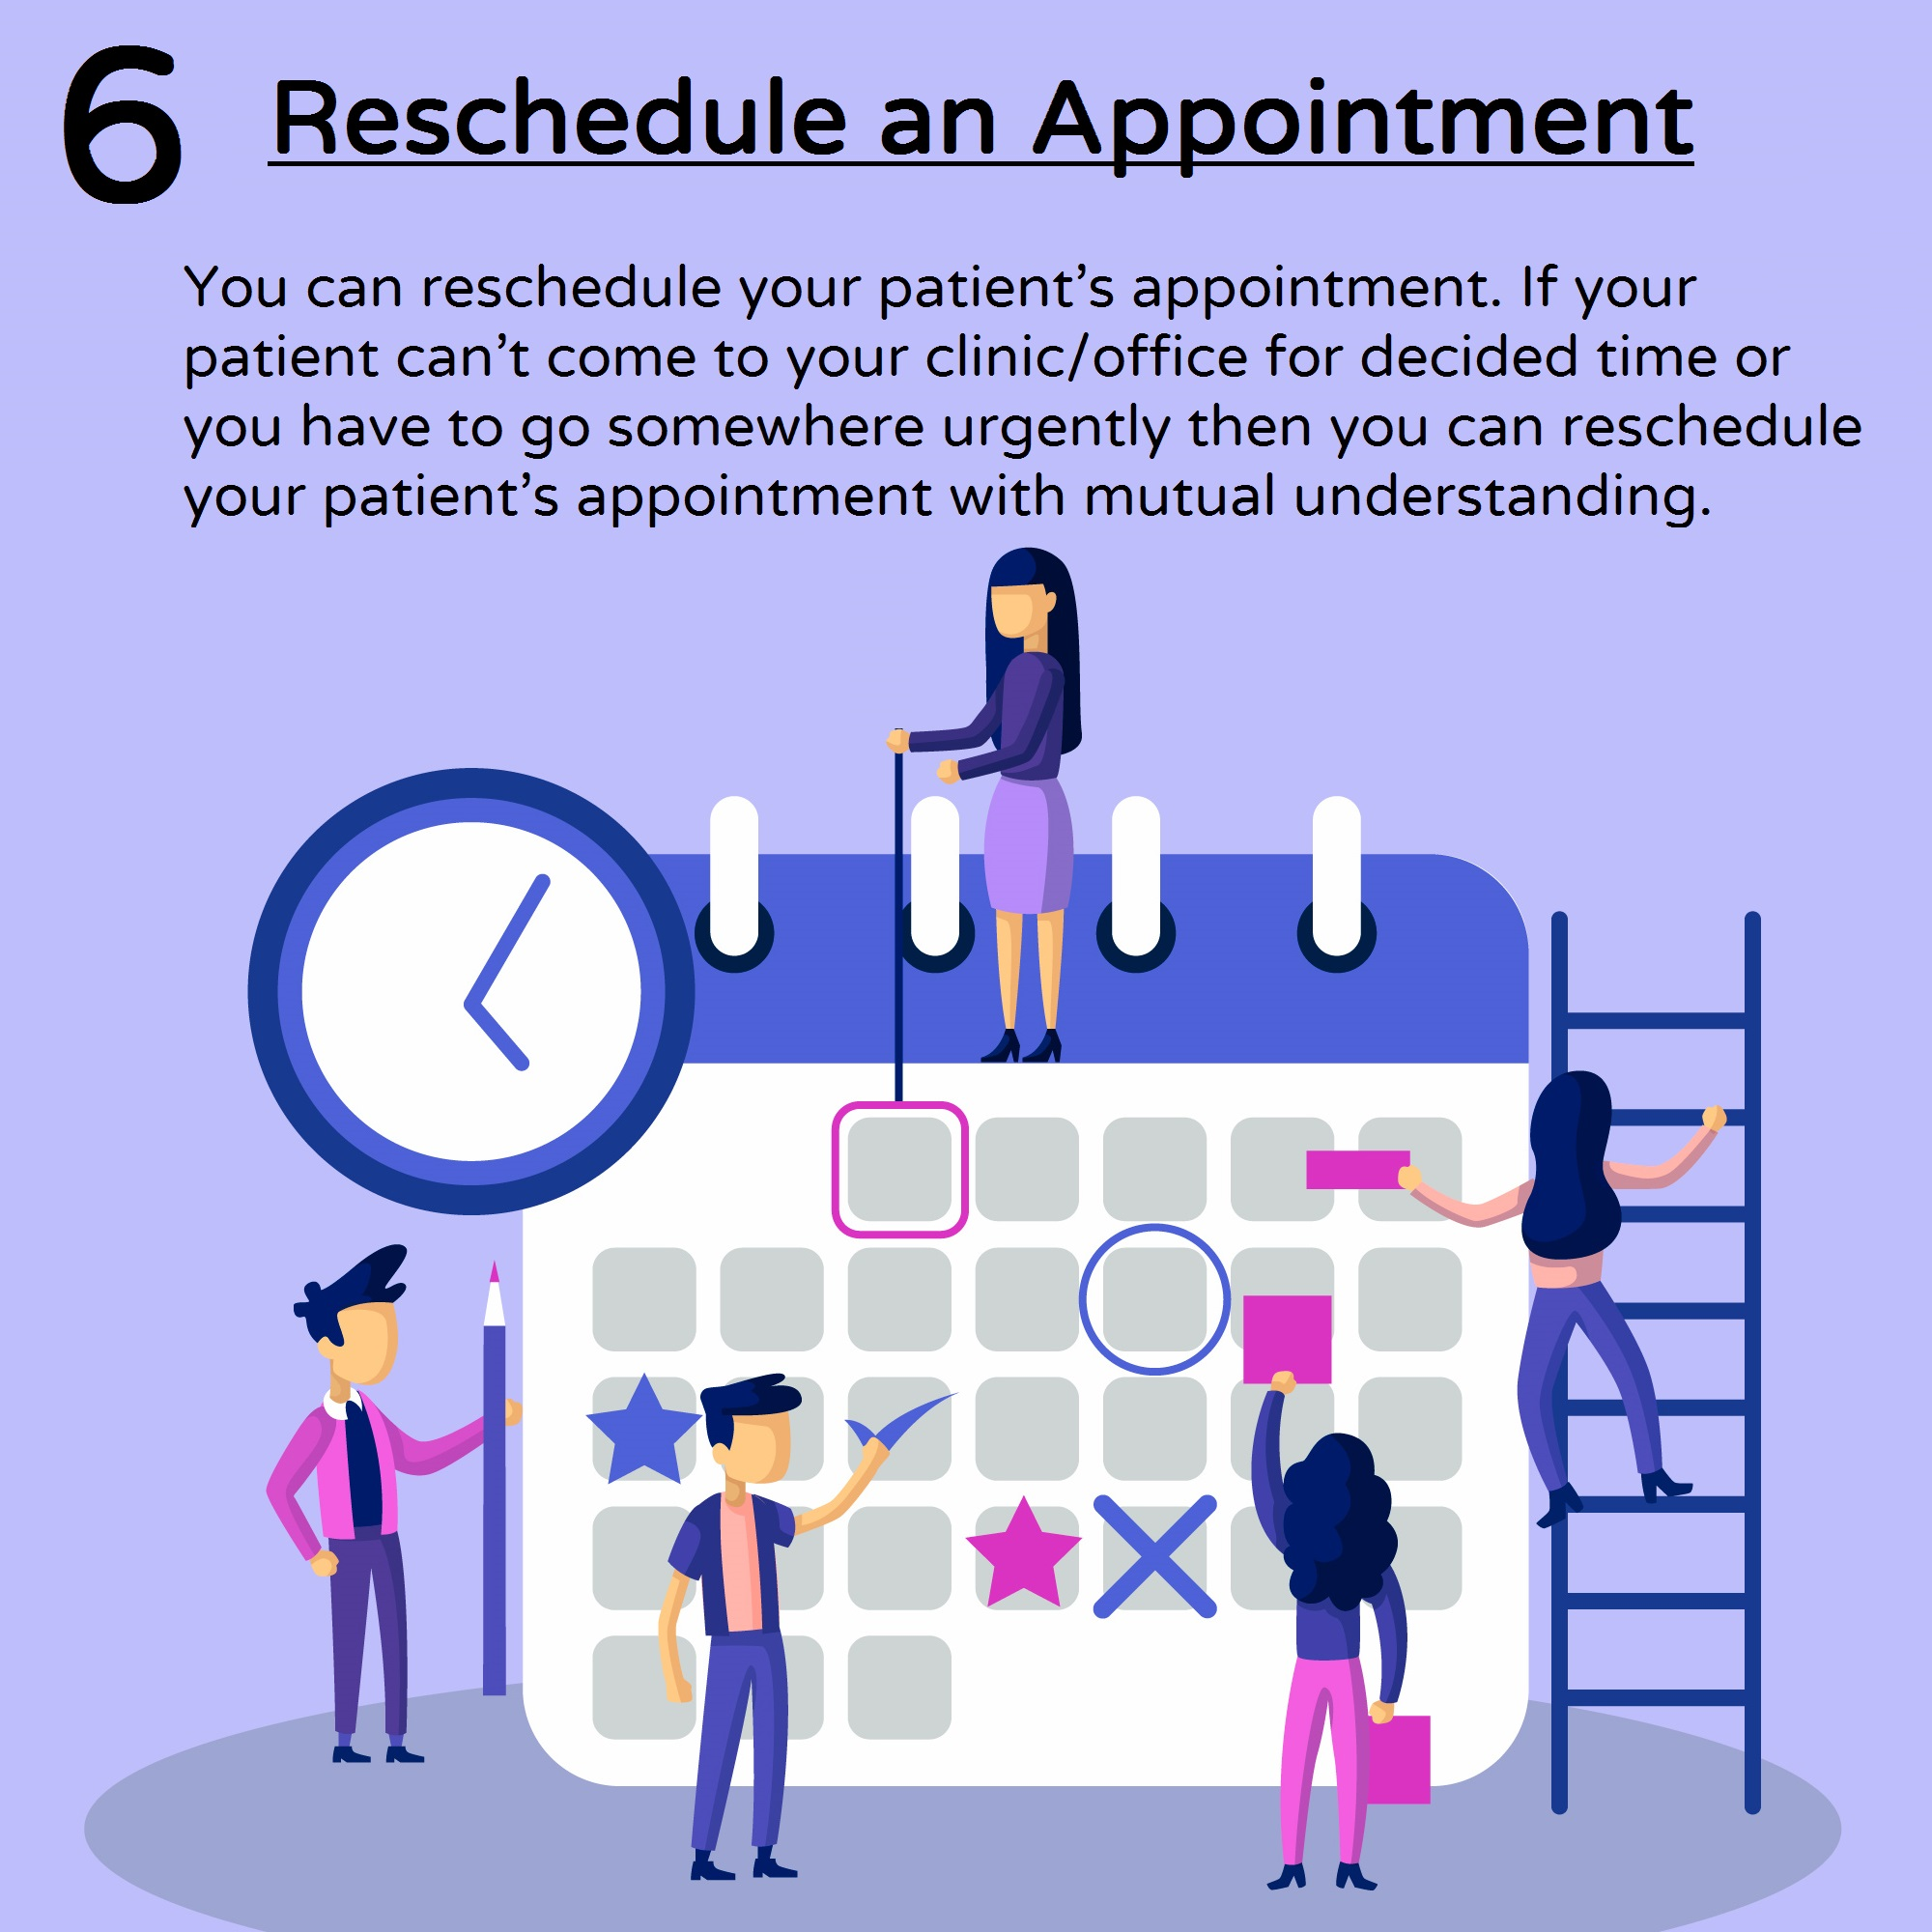 Reschedule an Appointment